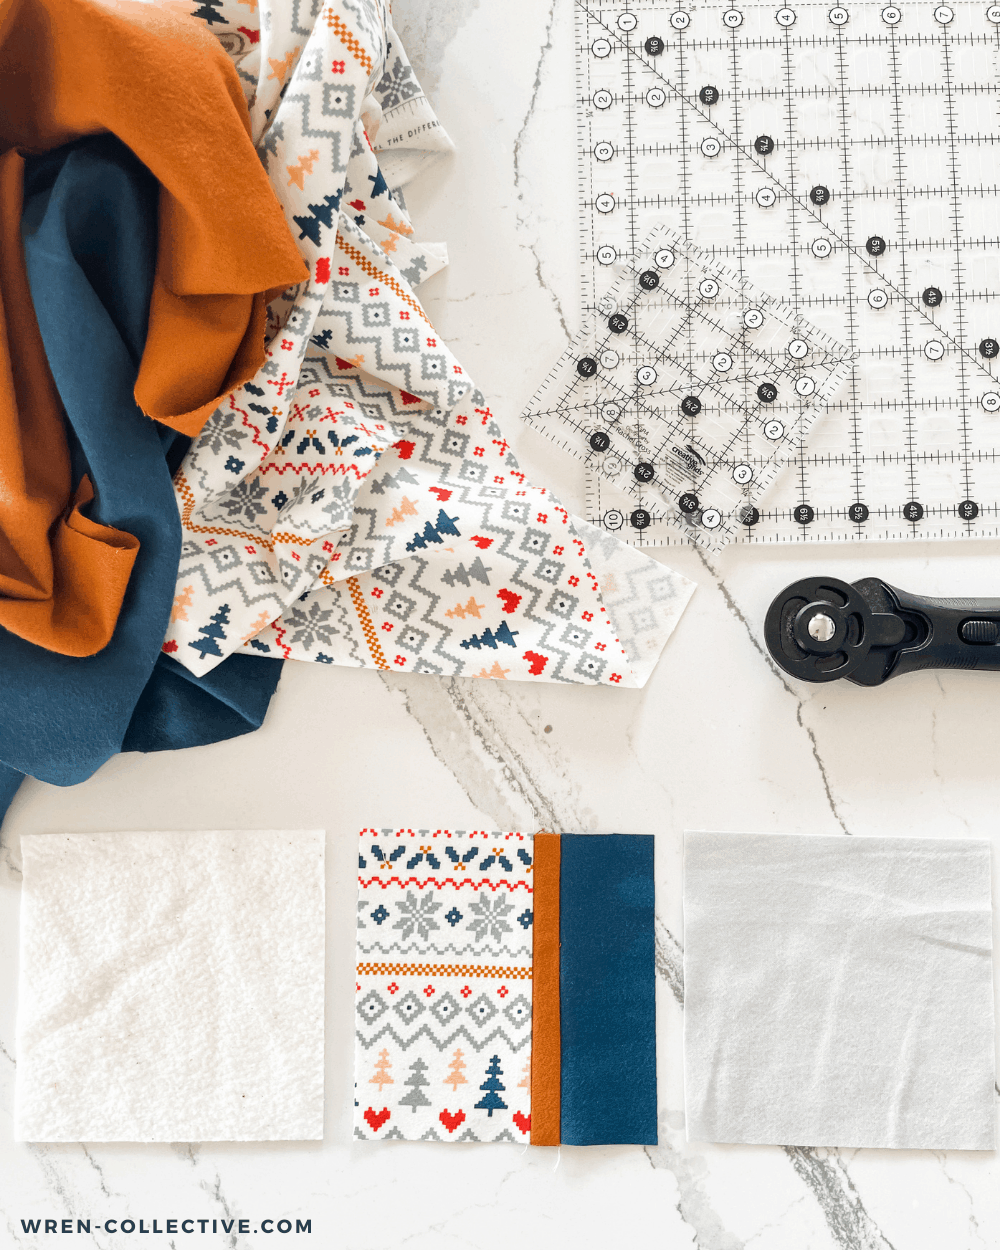 Scrap batting and scrap flannel are combined to make this fabric scrap project: a coaster! Batting, pieced coaster top, and scrap flannel backing are laid side by side in front of a rotary cutter, square rulers, and flannel fabric.